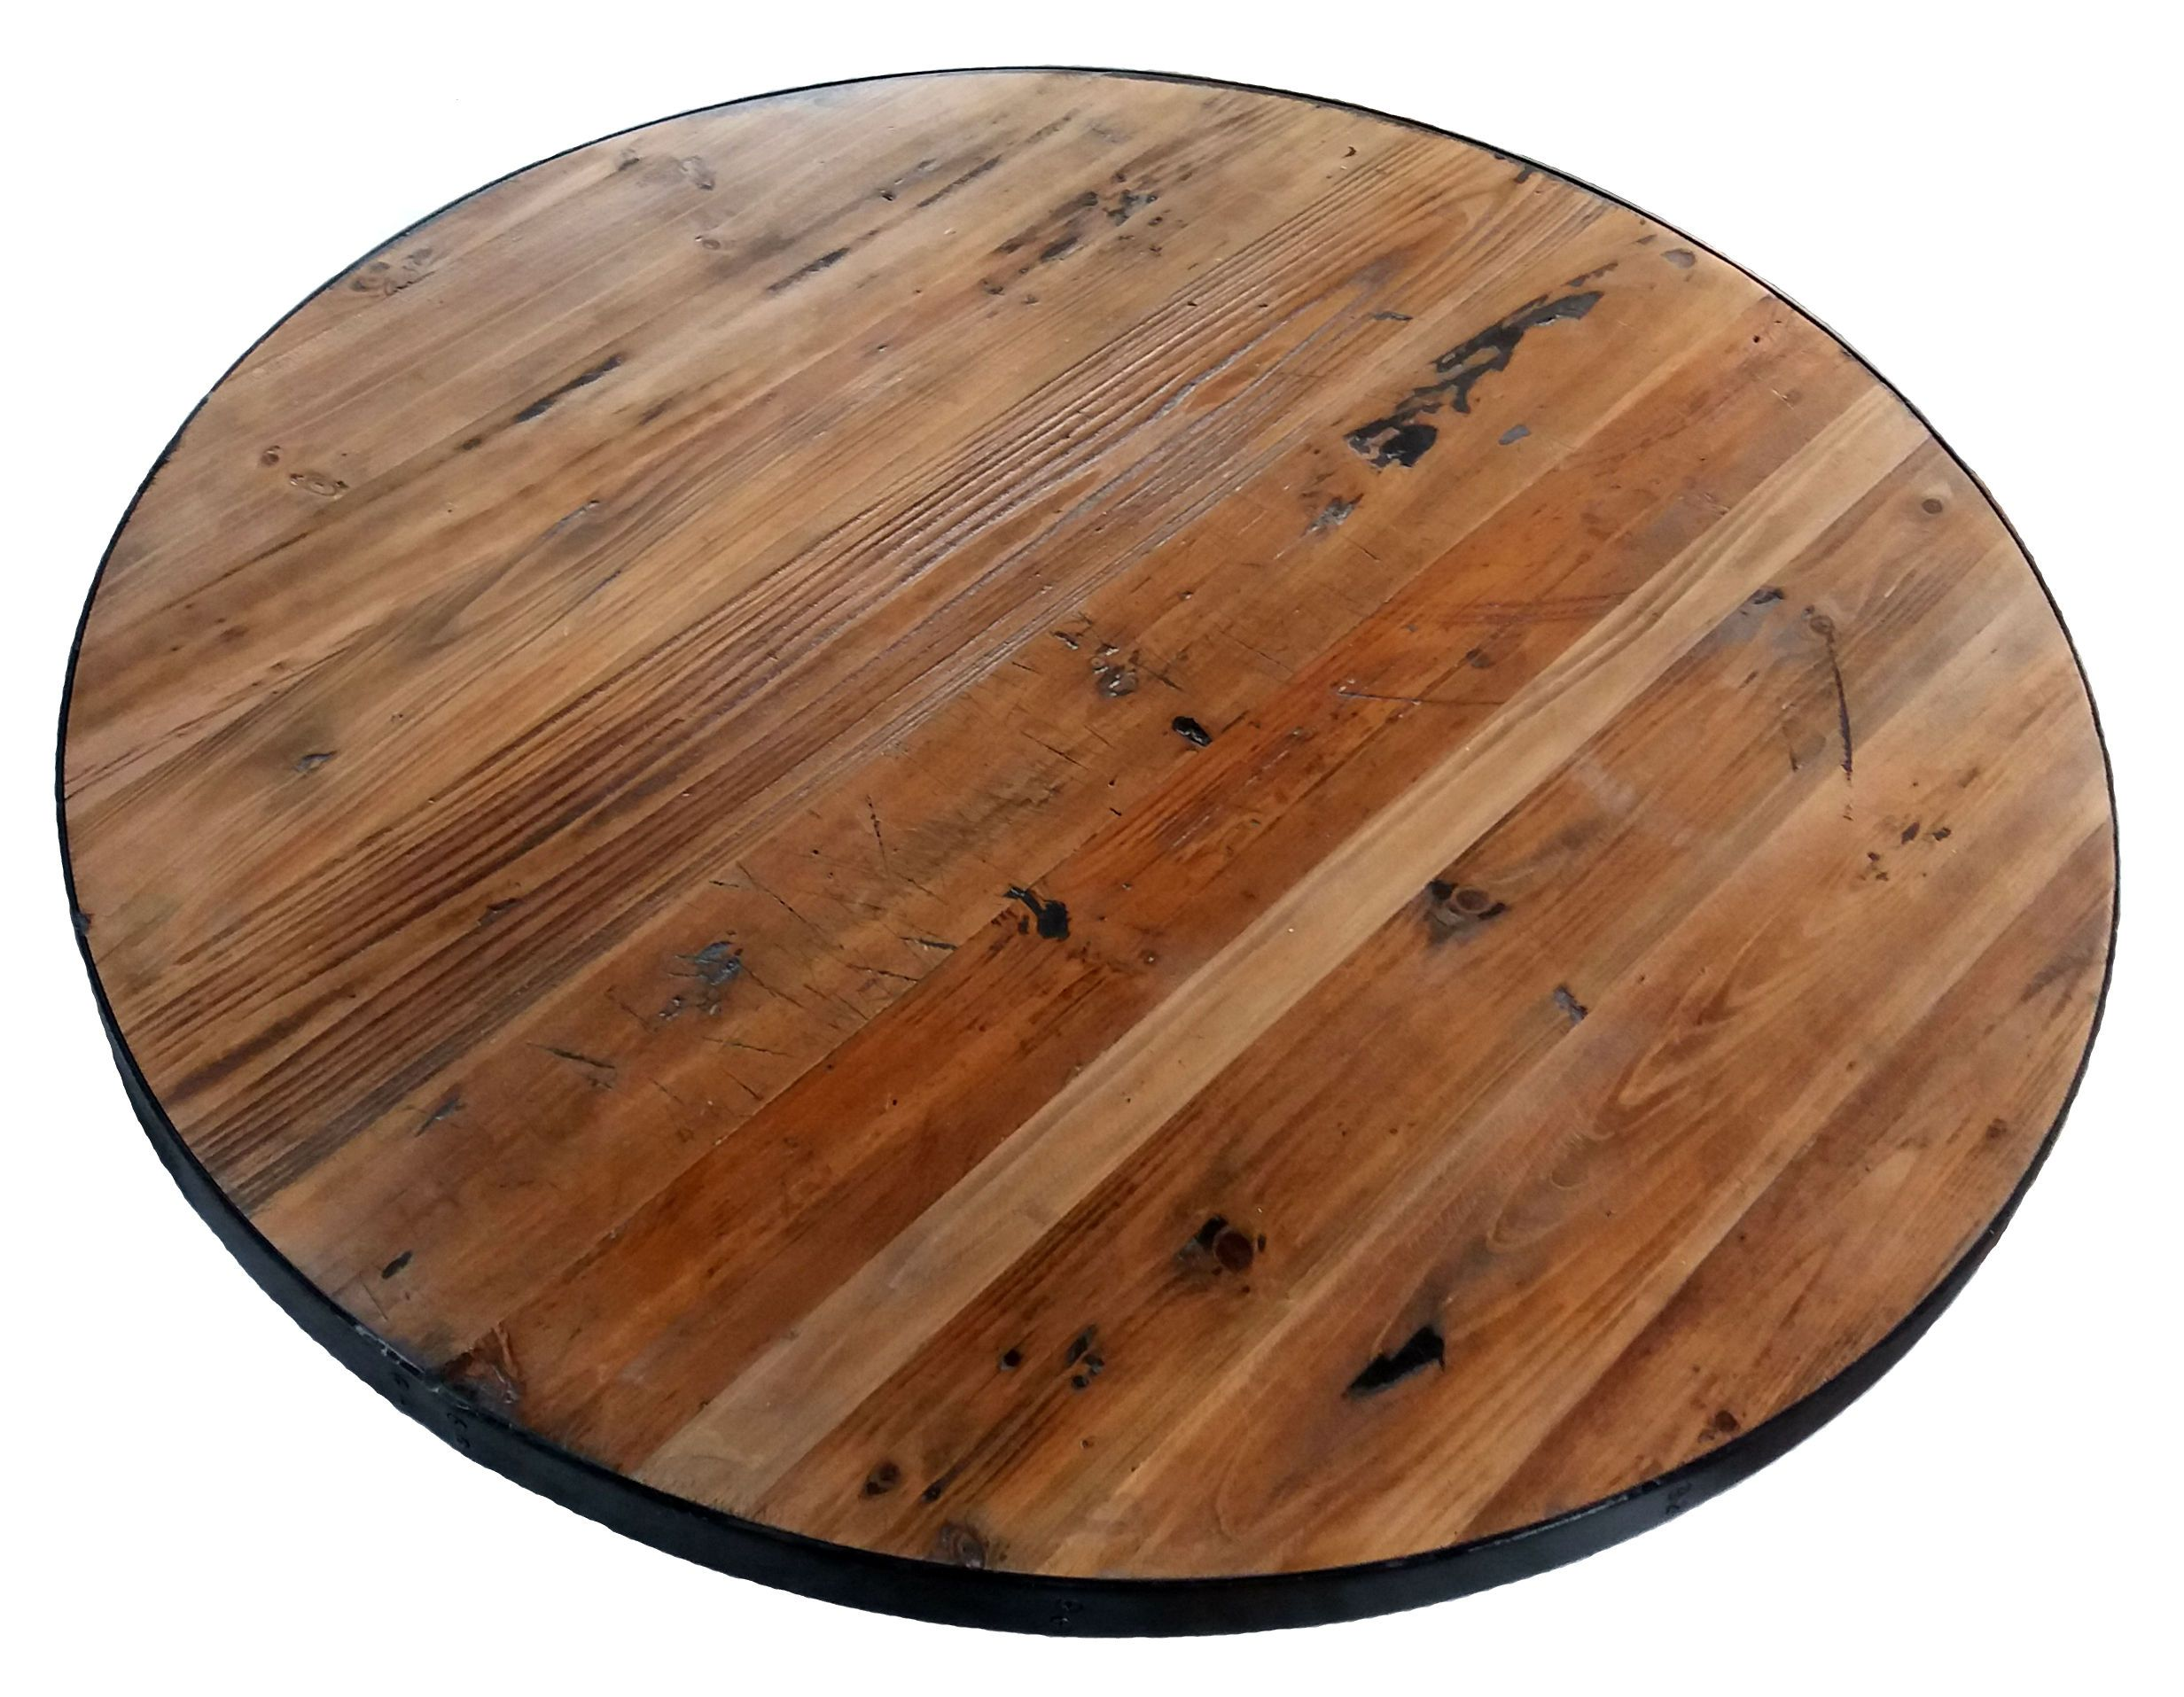 Round Reclaimed Wood Tabletops Restaurant Cafe Supplies Online Round Wood Table Reclaimed Wood Table Top Wooden Table Top Unfinished round table top